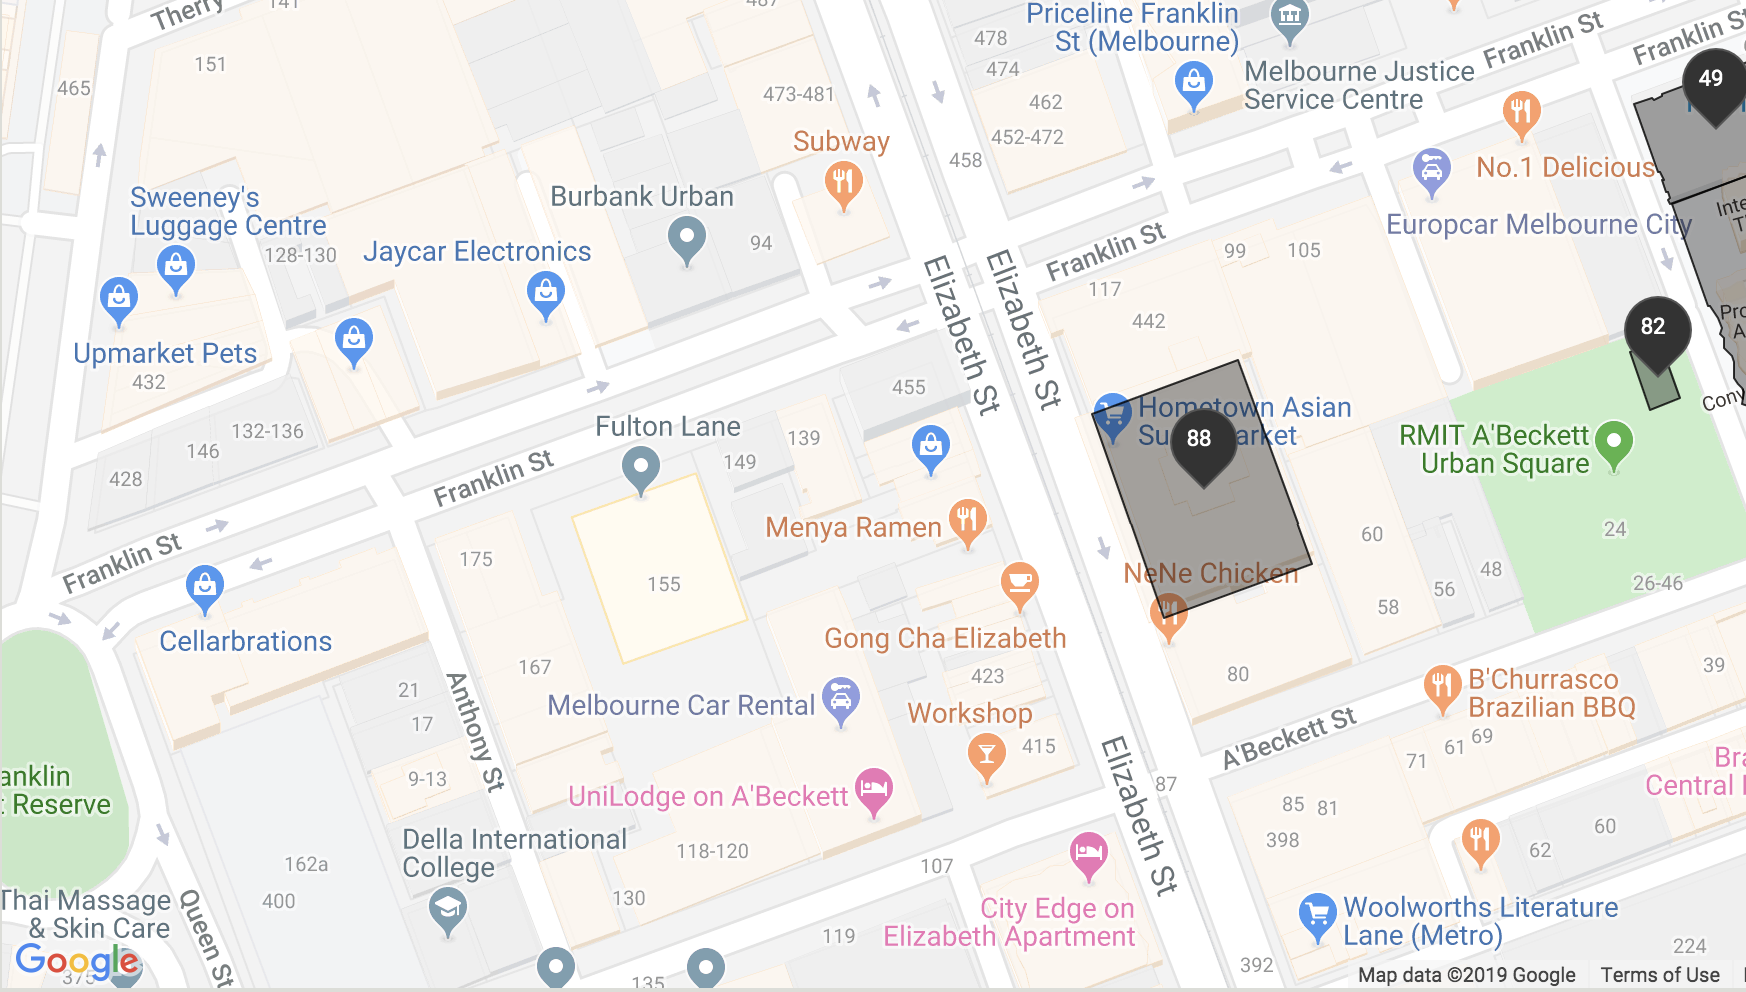 Map of RMIT building 88 location